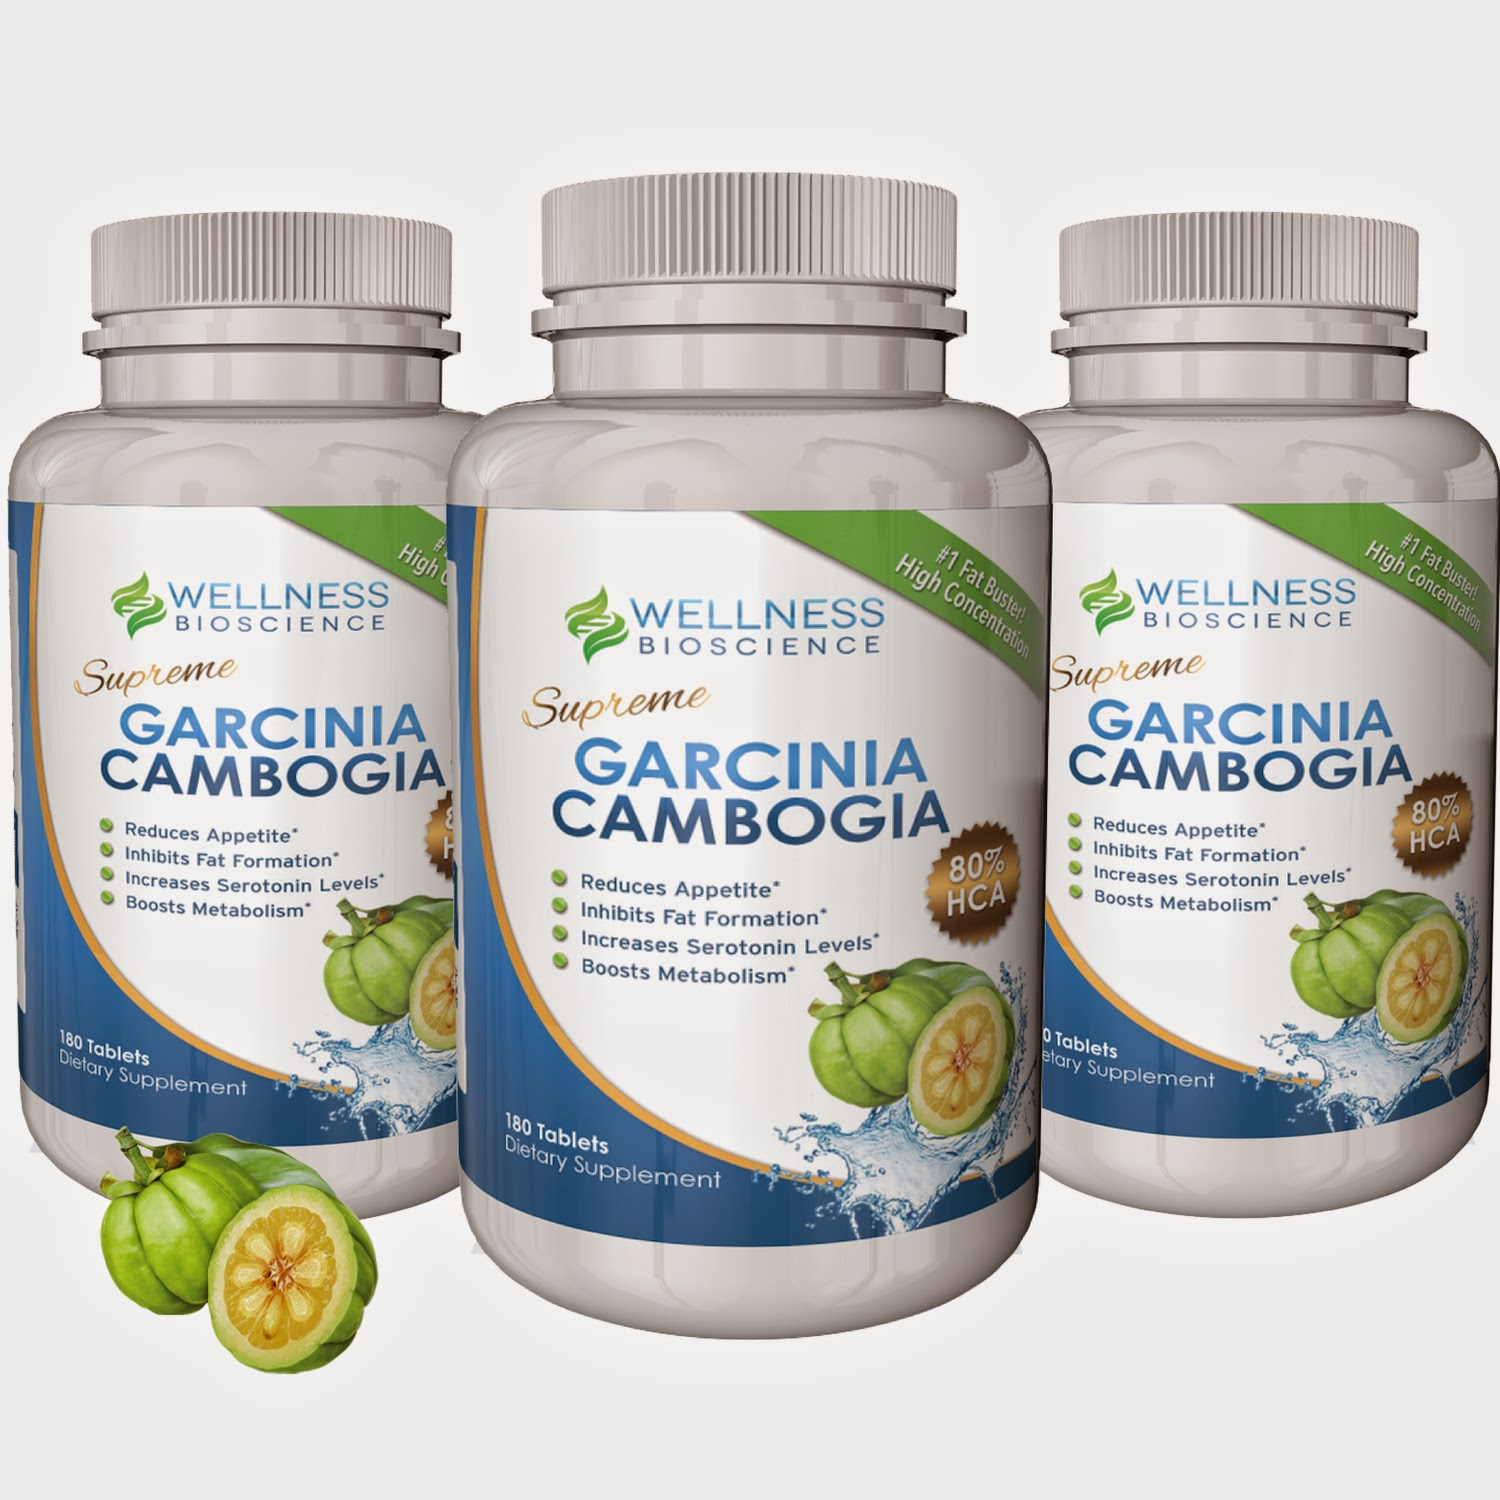 Garcinia cambogia price in philippines picture 3